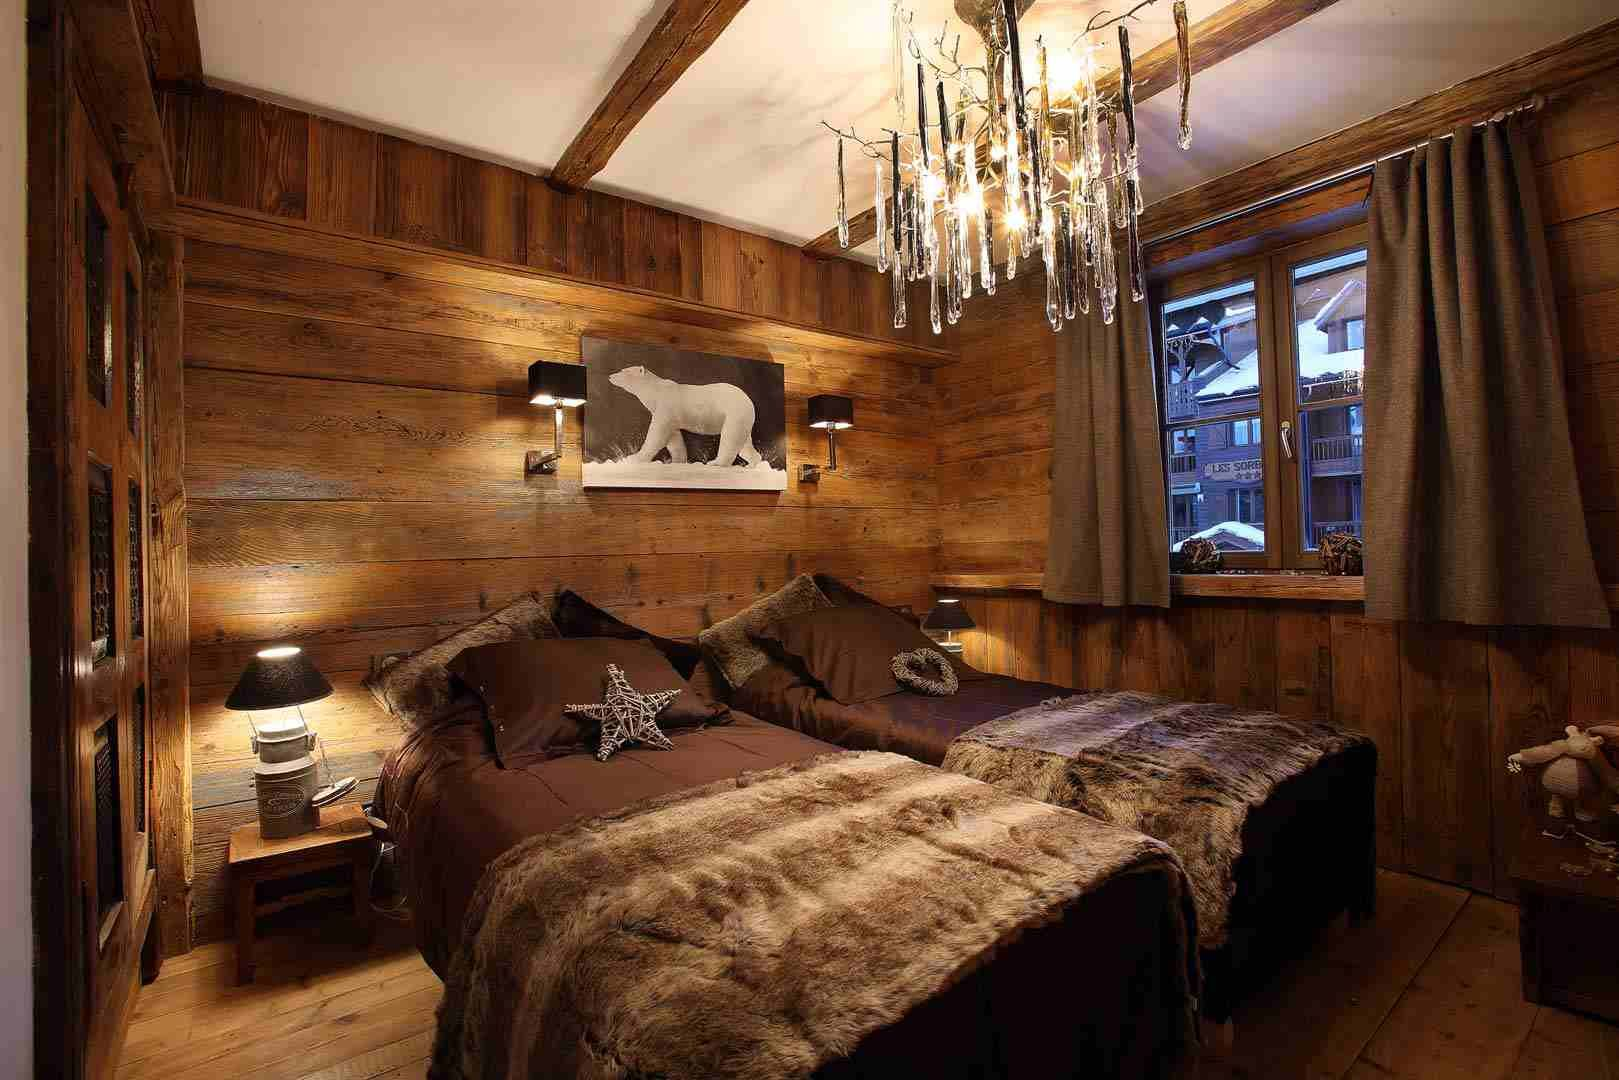 D co int rieur style chalet id es pour atmosph re for Cherche decoration interieur maison